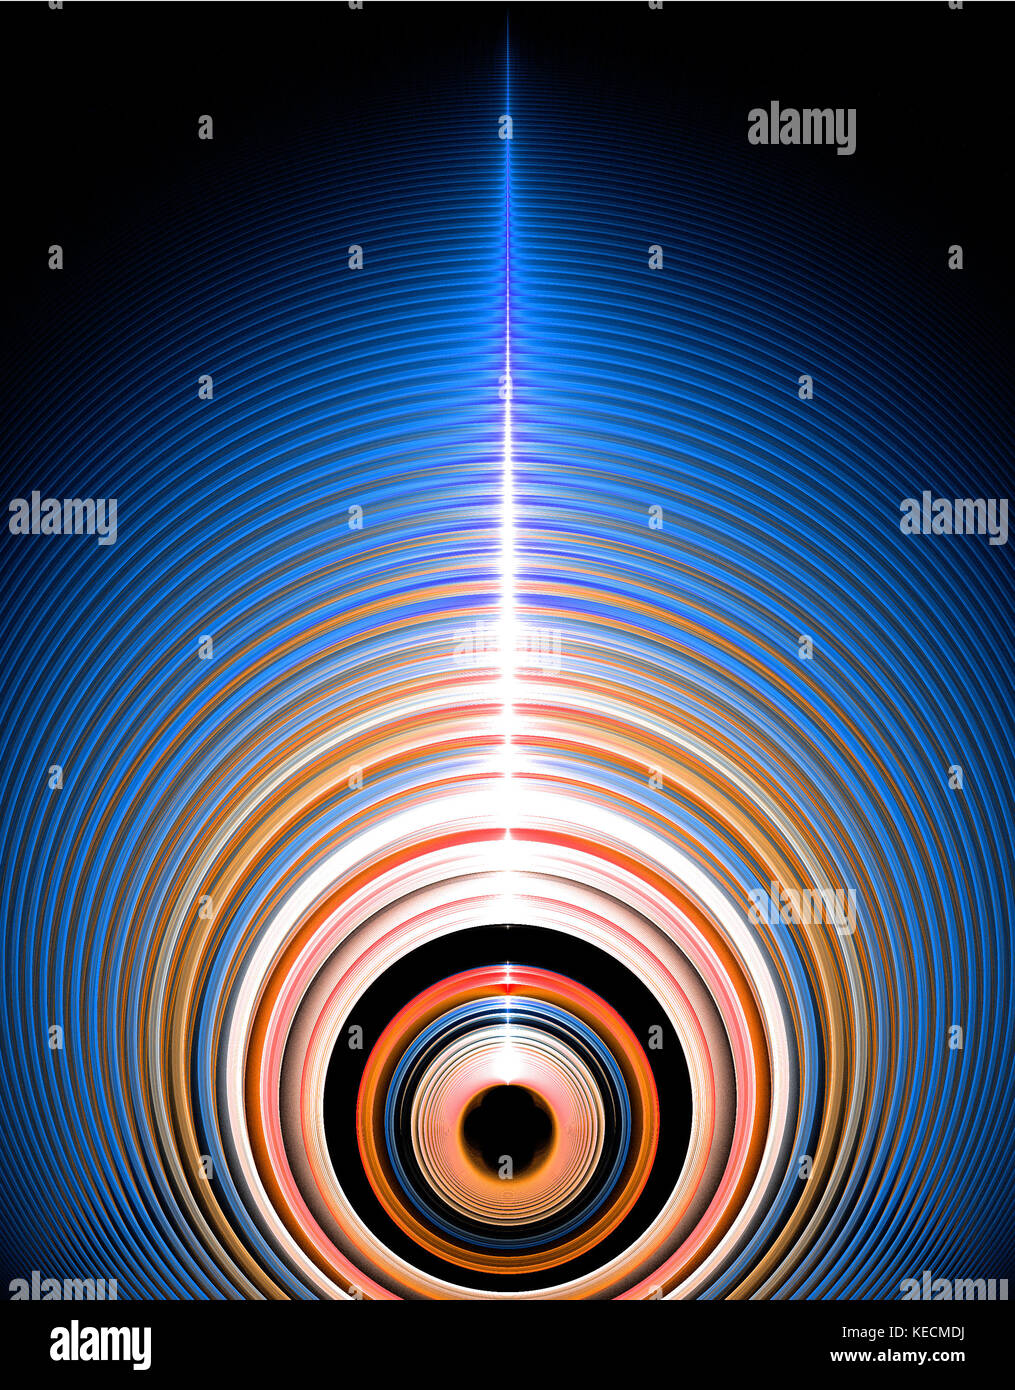 A large spherical object spinning at one million revolutions per second. - Stock Image